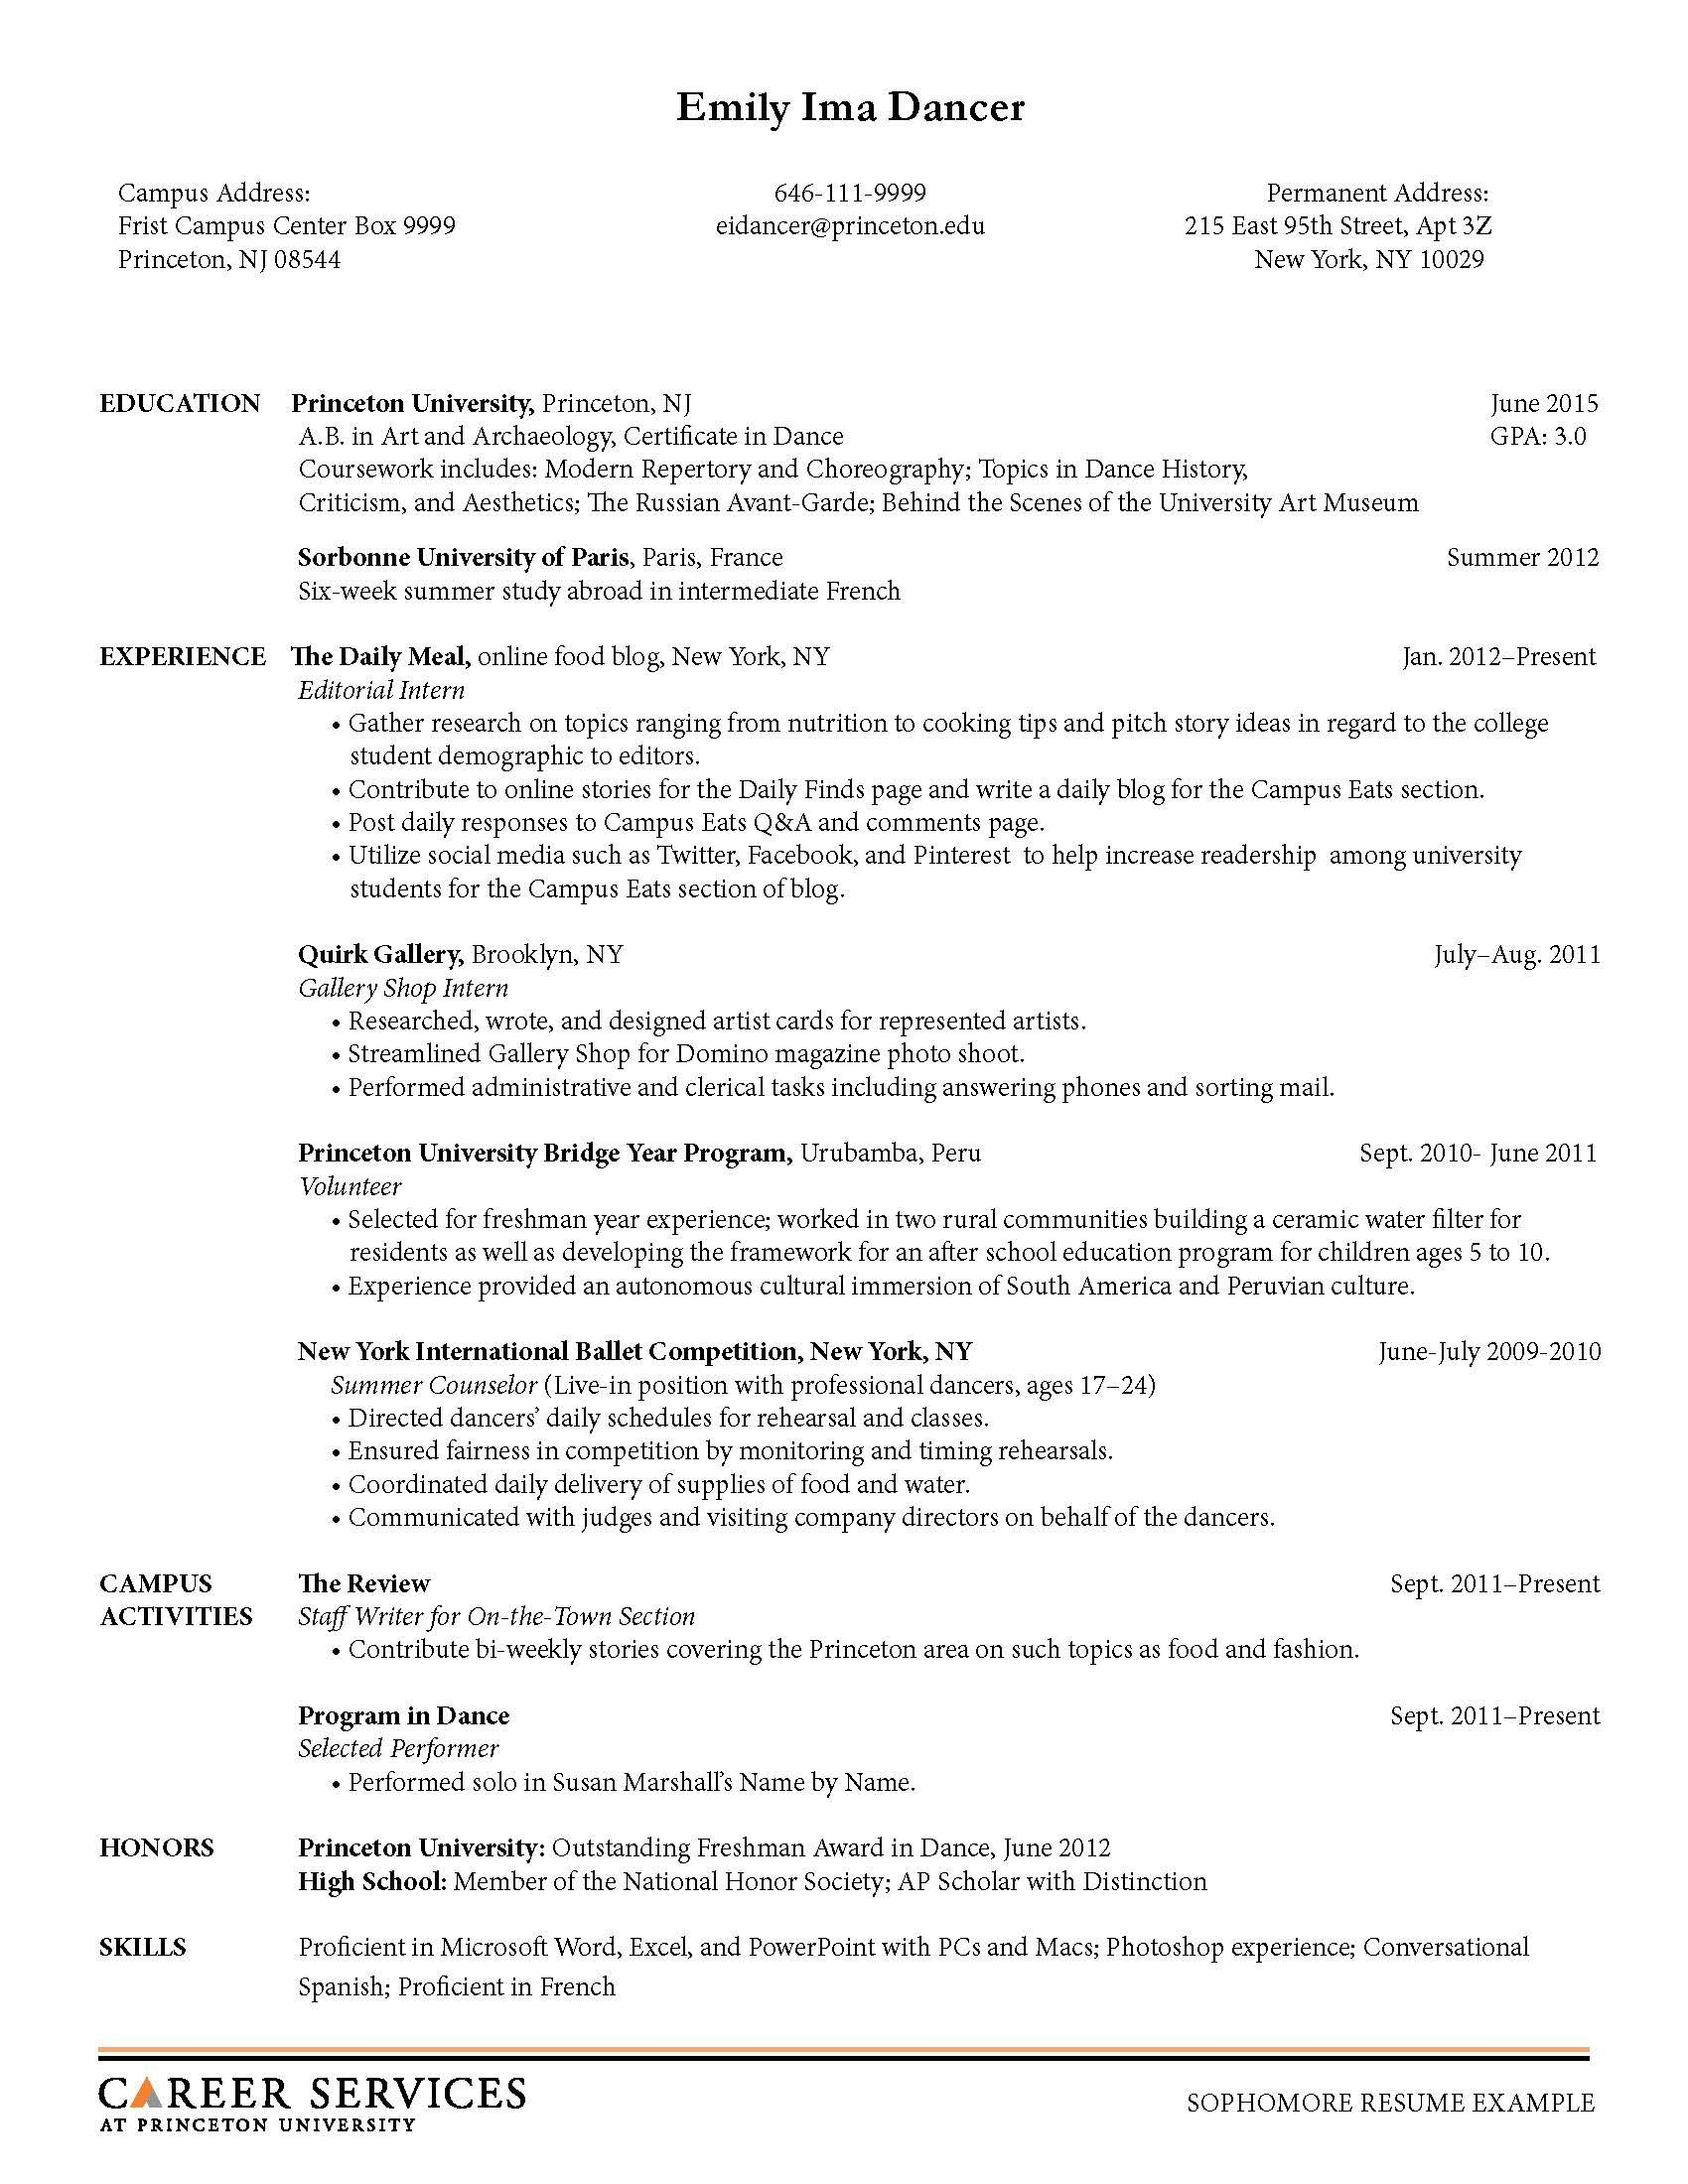 Opposenewapstandardsus  Wonderful Sample Resume Resume And Career On Pinterest With Exciting Resume Examples For College Students With No Work Experience Besides Resume For Teenagers Furthermore Resume Submission Email With Charming Resume Teamwork Also Best Free Online Resume Builder In Addition Work Resume Example And Teacher Job Description Resume As Well As Business Professional Resume Additionally Outside Sales Representative Resume From Pinterestcom With Opposenewapstandardsus  Exciting Sample Resume Resume And Career On Pinterest With Charming Resume Examples For College Students With No Work Experience Besides Resume For Teenagers Furthermore Resume Submission Email And Wonderful Resume Teamwork Also Best Free Online Resume Builder In Addition Work Resume Example From Pinterestcom